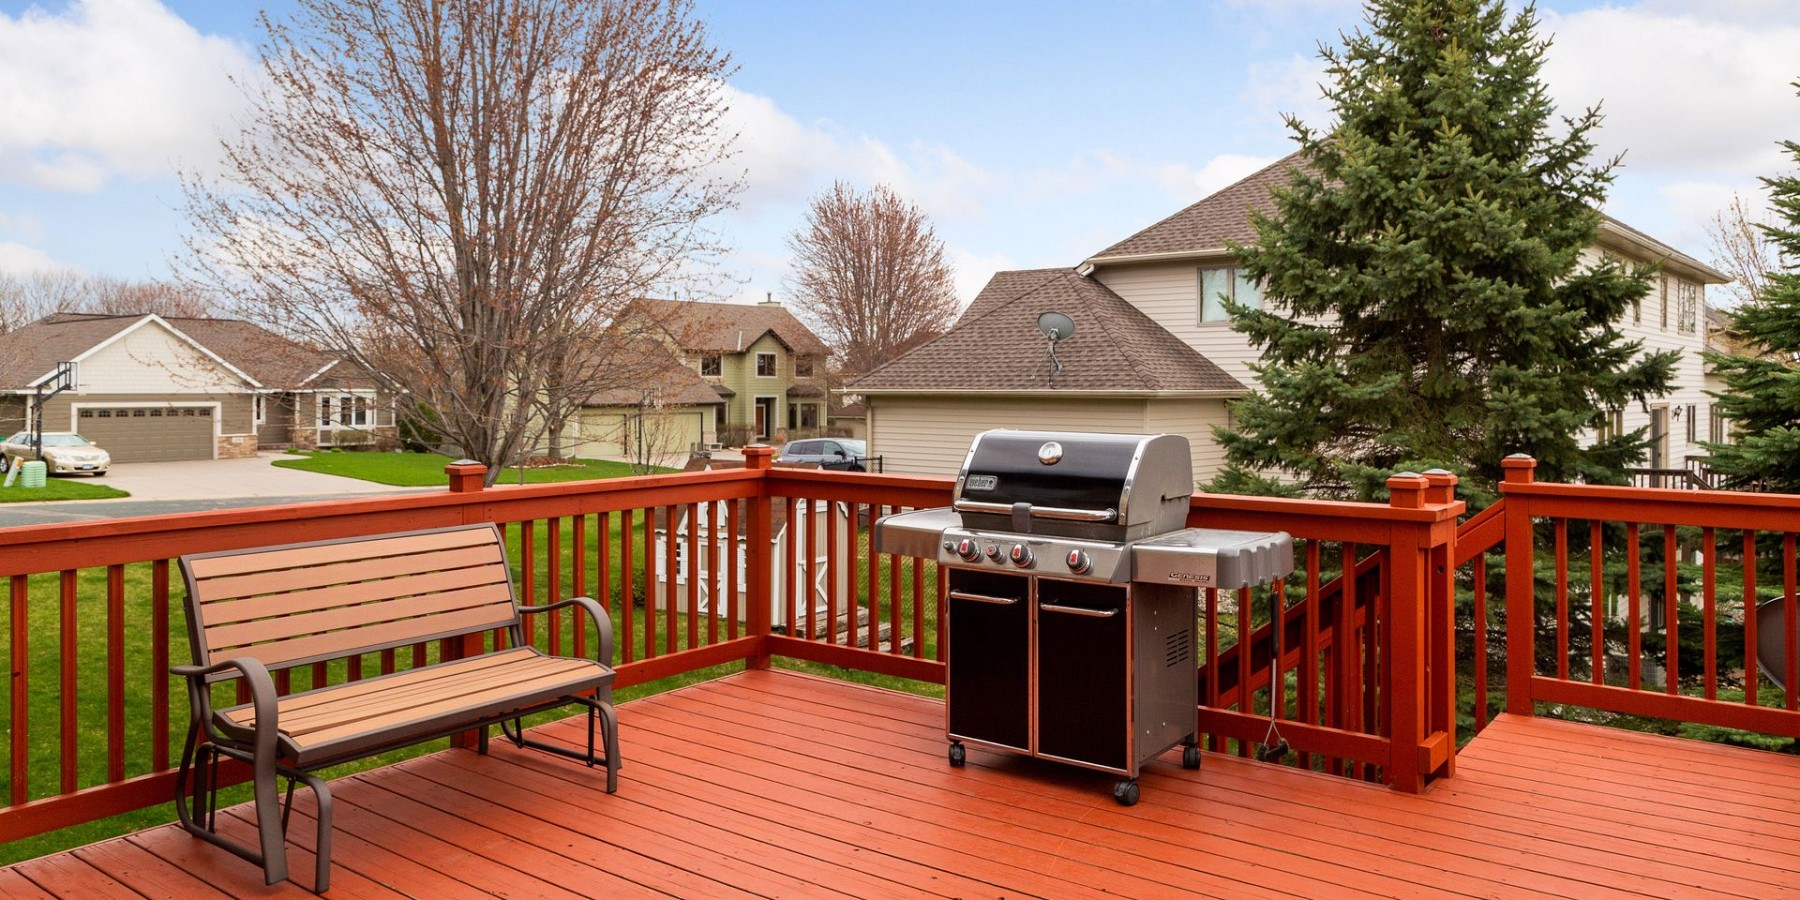 11315 42ND PLACE NORTH, PLYMOUTH, MN 55441